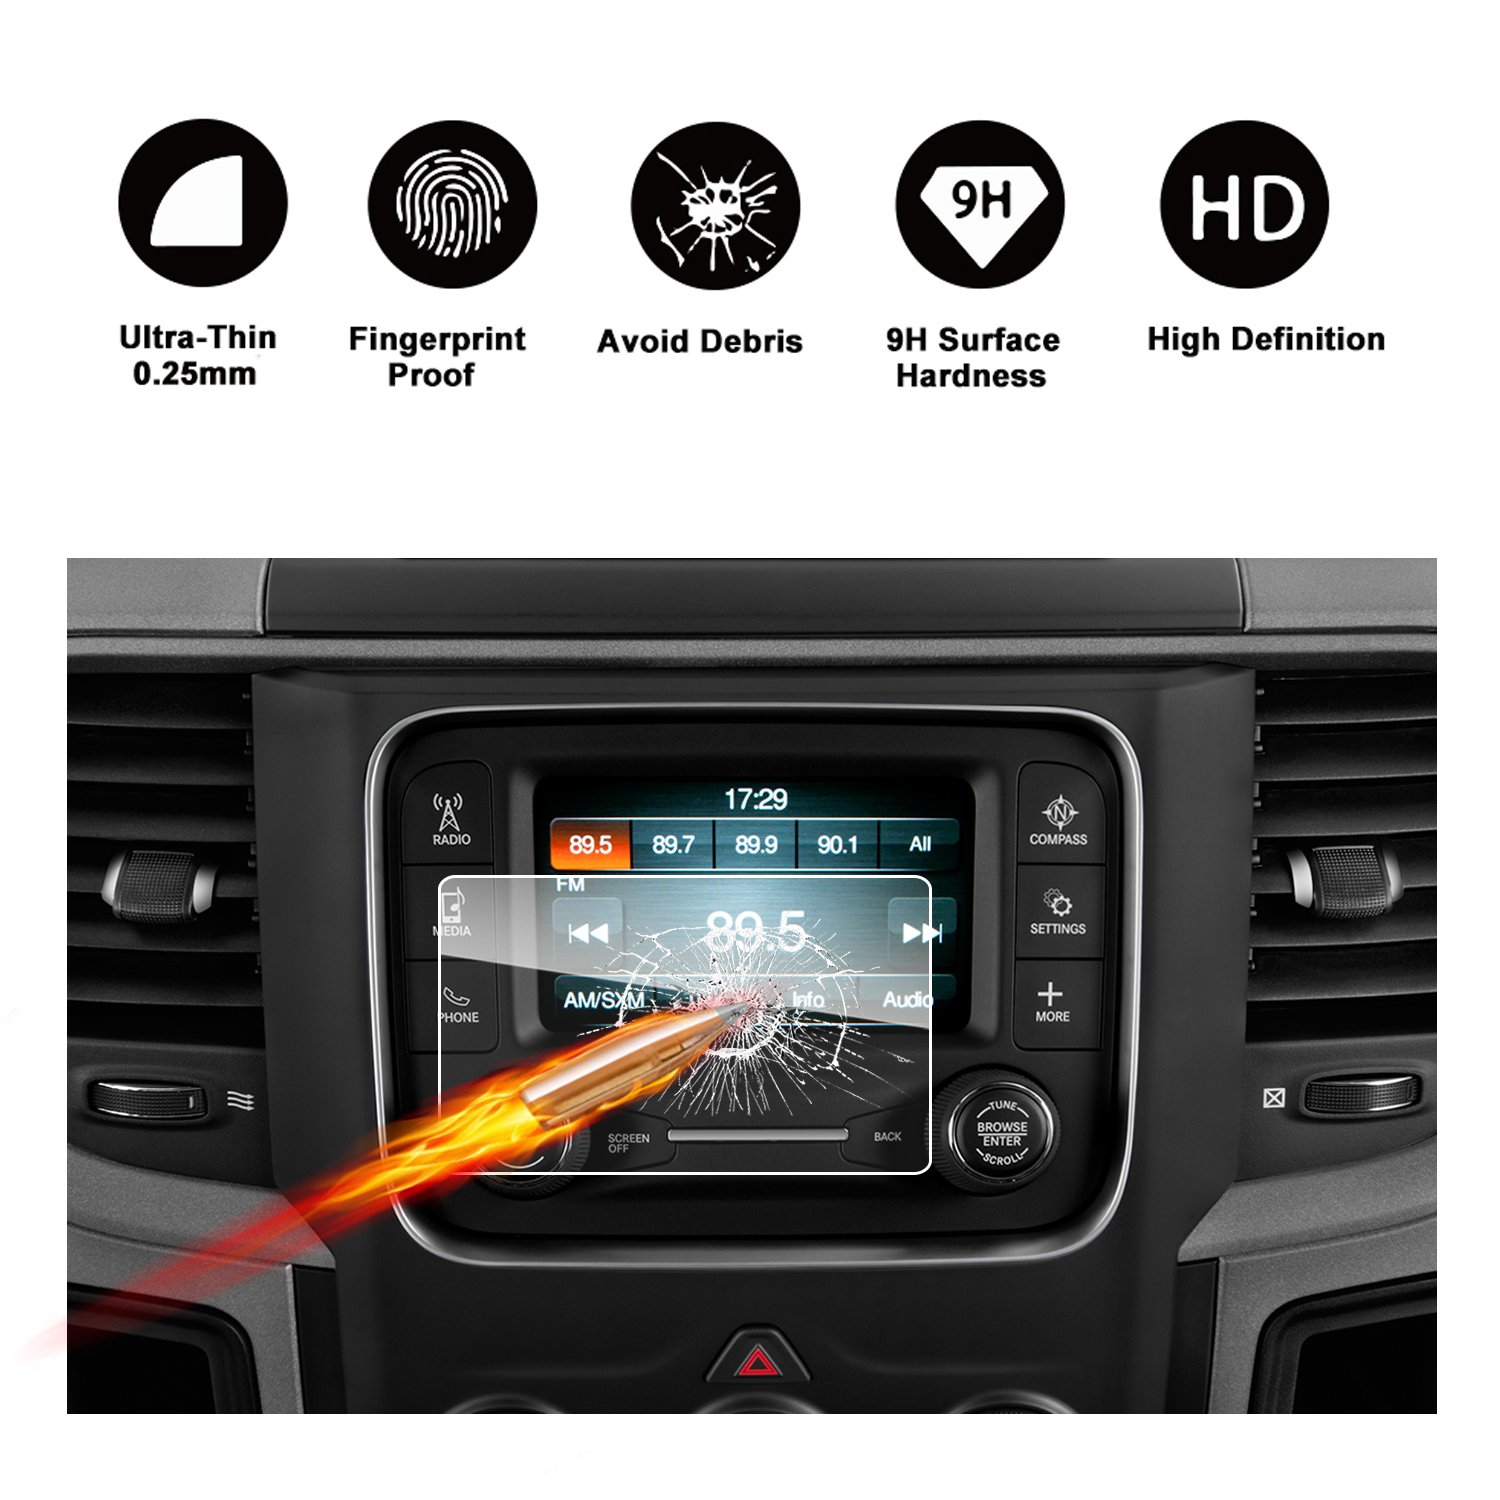 2013-2018 Dodge Ram 1500 2500 3500 Uconnect Touch Screen Car Display Navigation Screen Protector, RUIYA HD Clear Tempered Glass Car in-Dash Screen Protective Film (5-Inch)